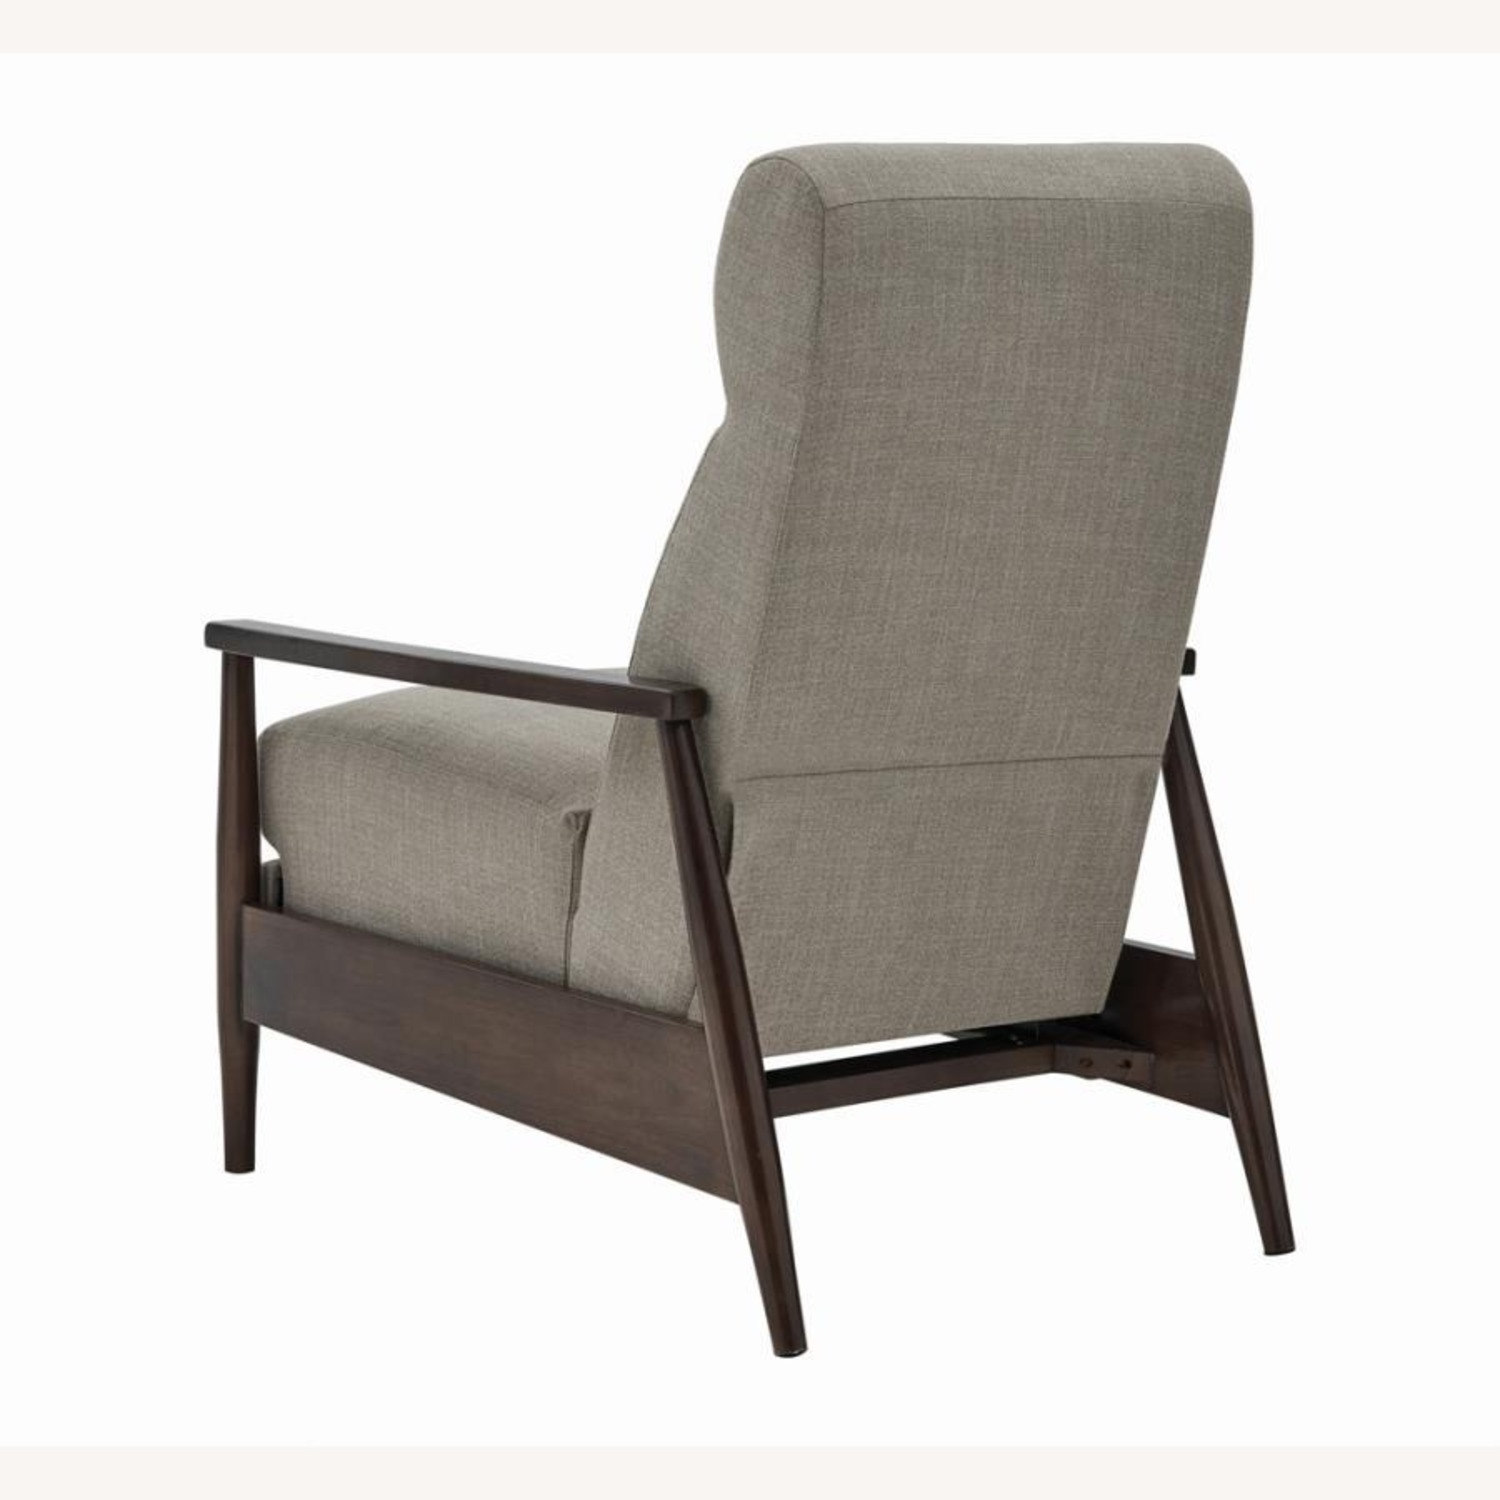 Push-Back Recliner In Cream Performance Fabric - image-5